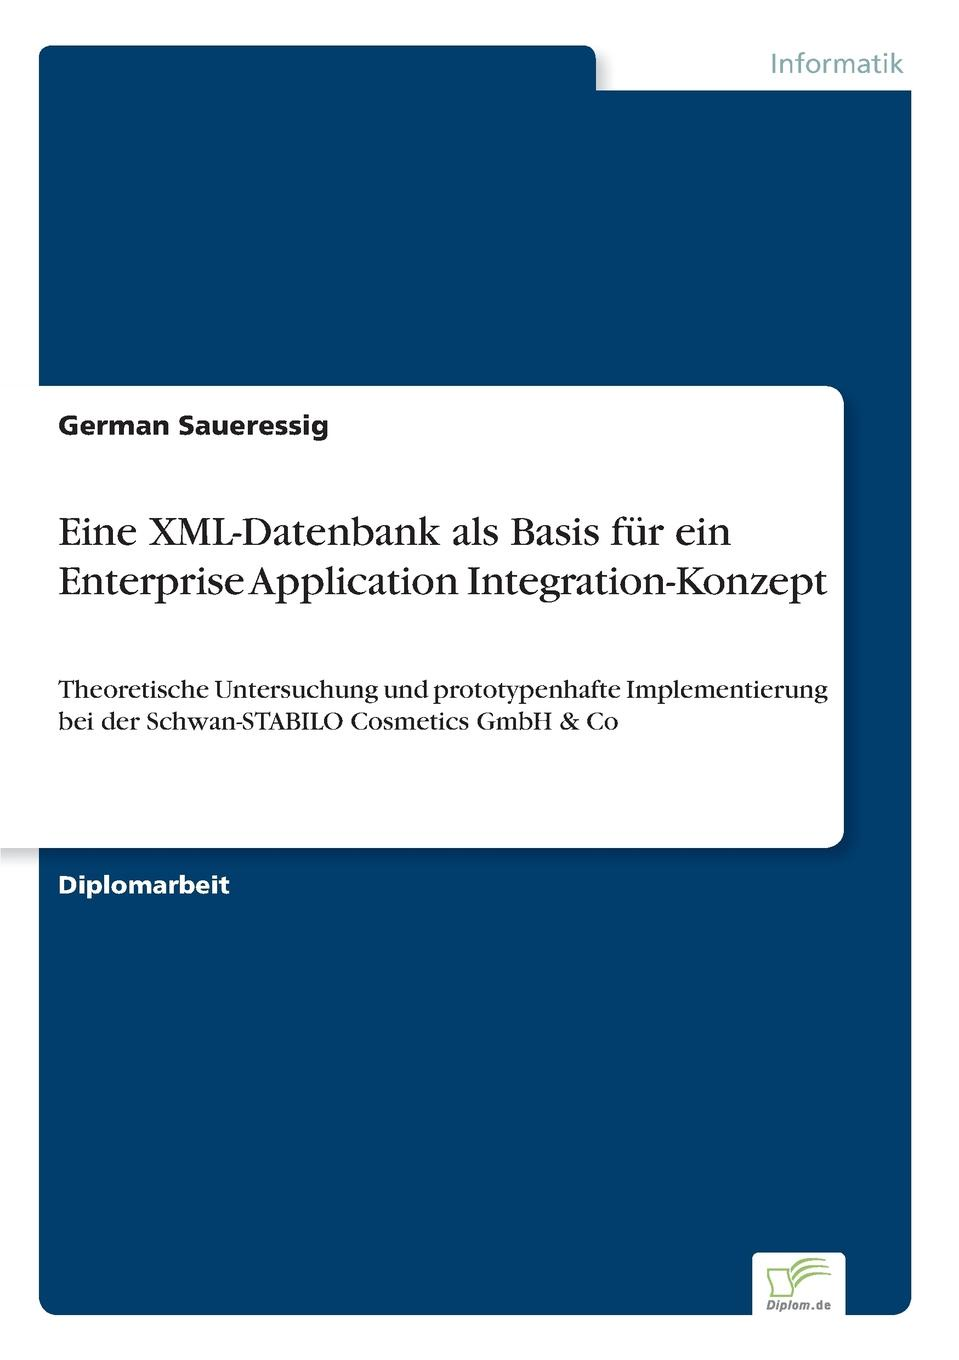 German Saueressig Eine XML-Datenbank als Basis fur ein Enterprise Application Integration-Konzept sitemap 165 xml